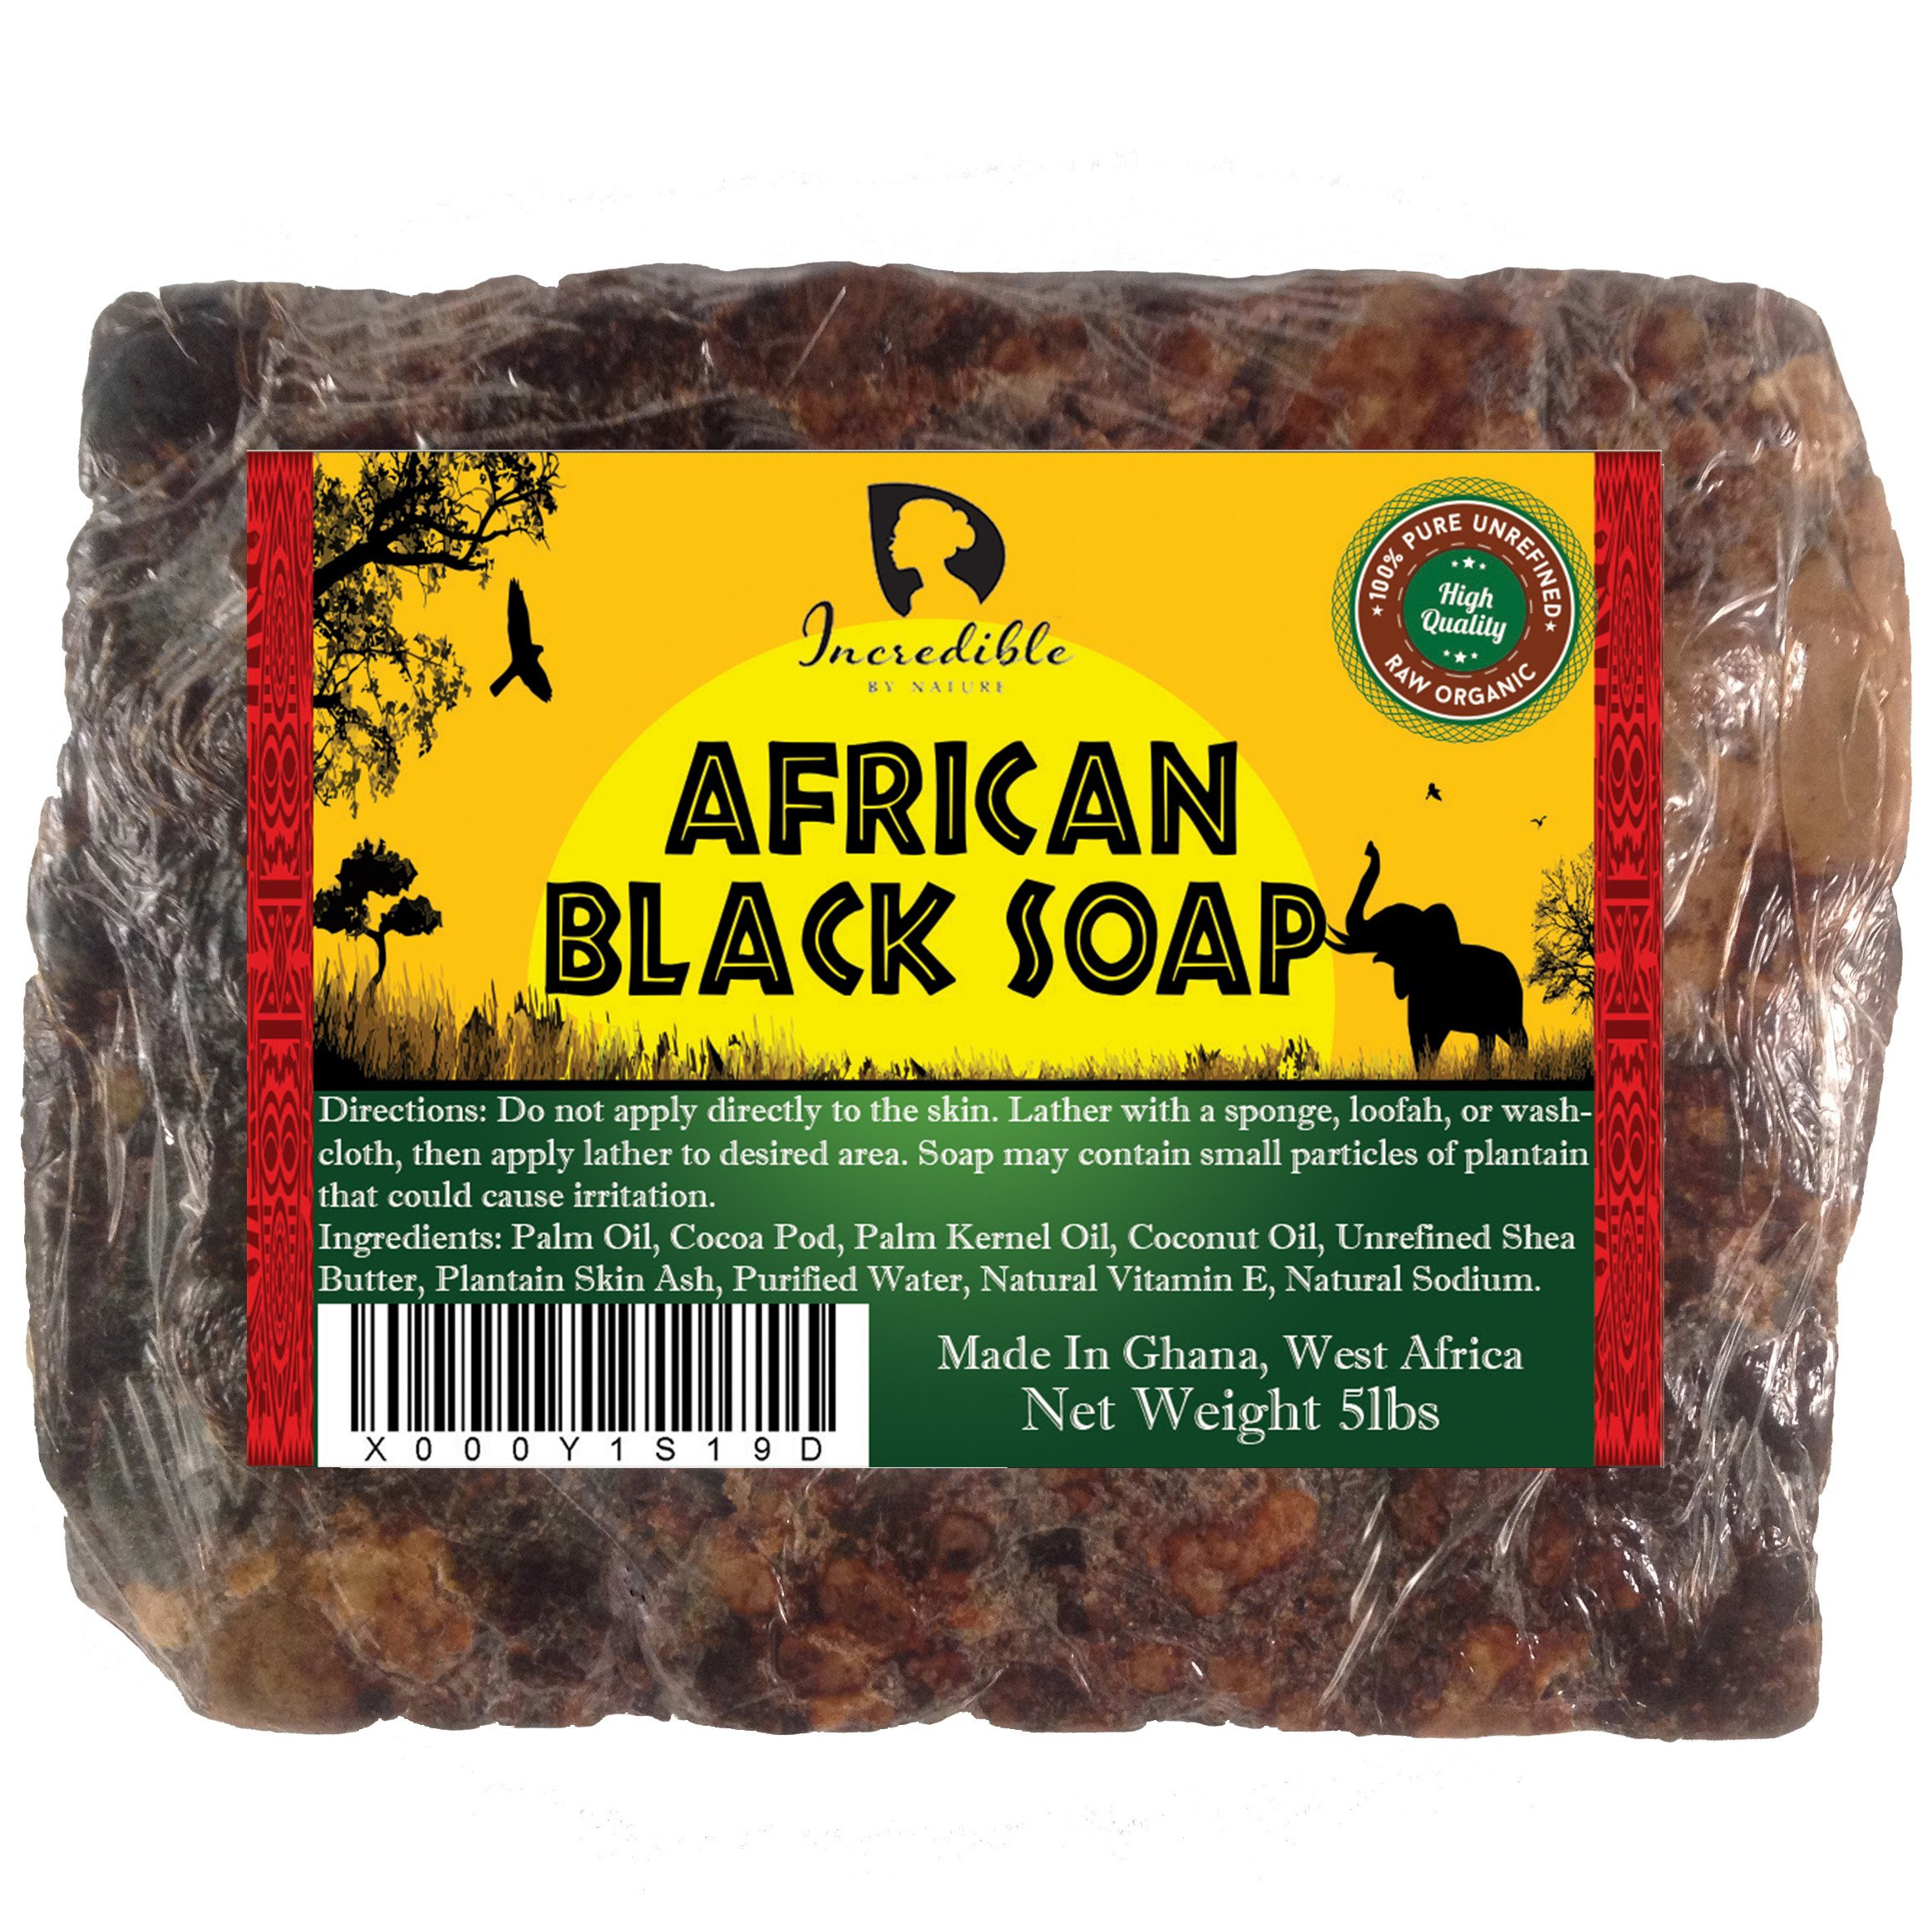 African Black Soap   Bulk 5lb Raw Organic Soap for Skin Conditions Such as Acne, Dry Skin, Rashes, Burns, Scar Removal, Face & Body Wash   Beauty Bar From Ghana West Africa   Incredible By Nature